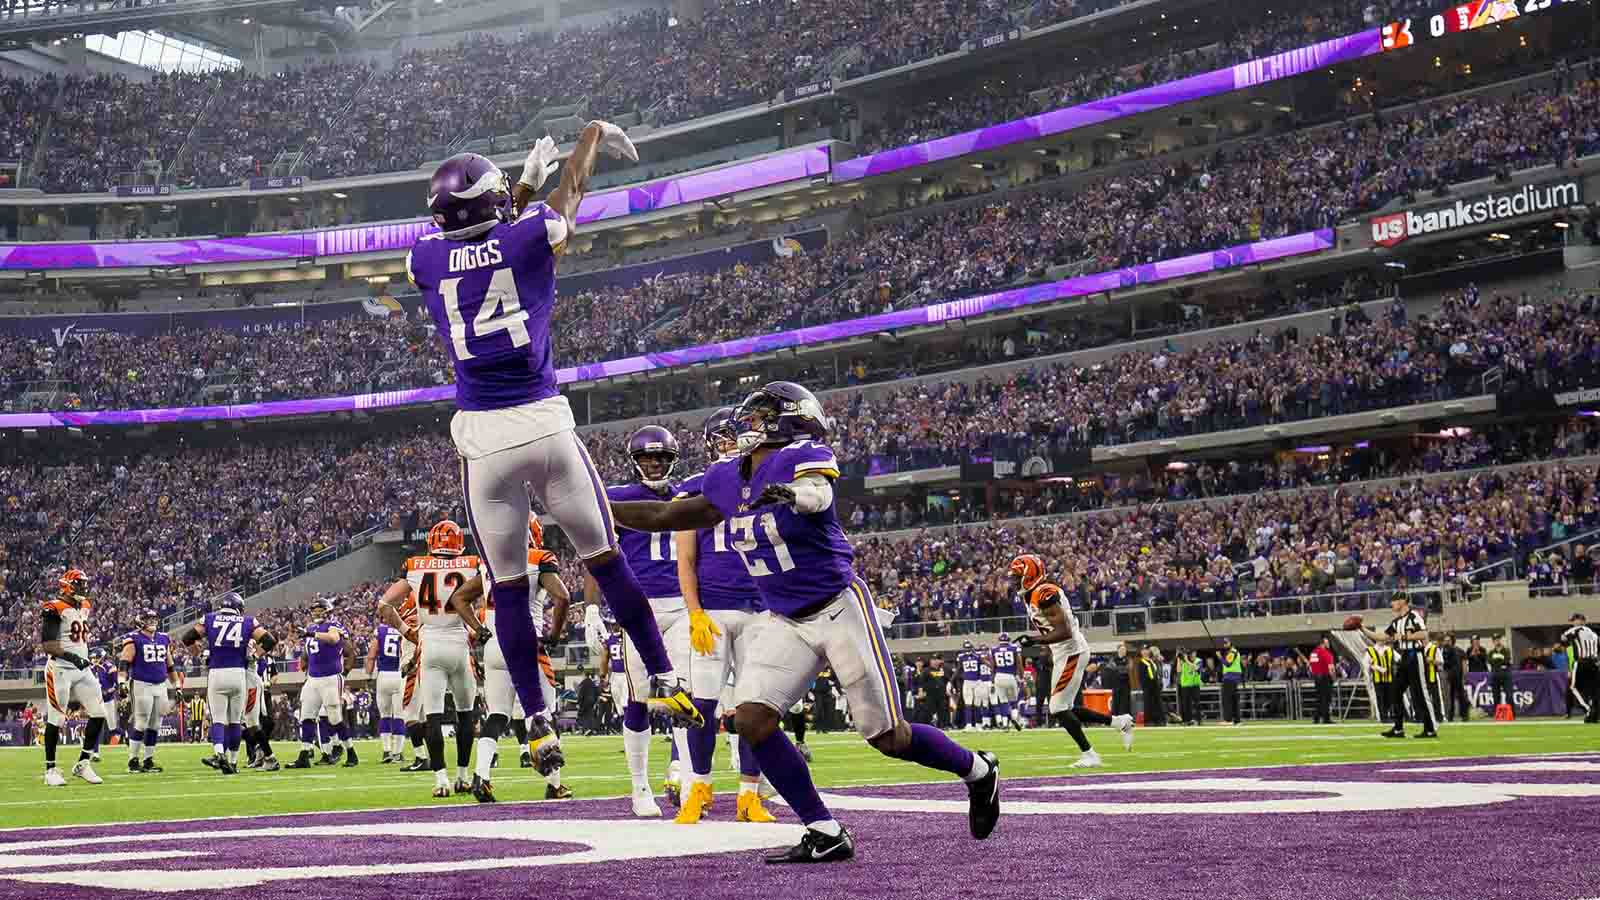 Minnesota Vikings wide receiver Stefon Diggs celebrates his touchdown in the second quarter against the Cincinnati Bengals at U.S. Bank Stadium.